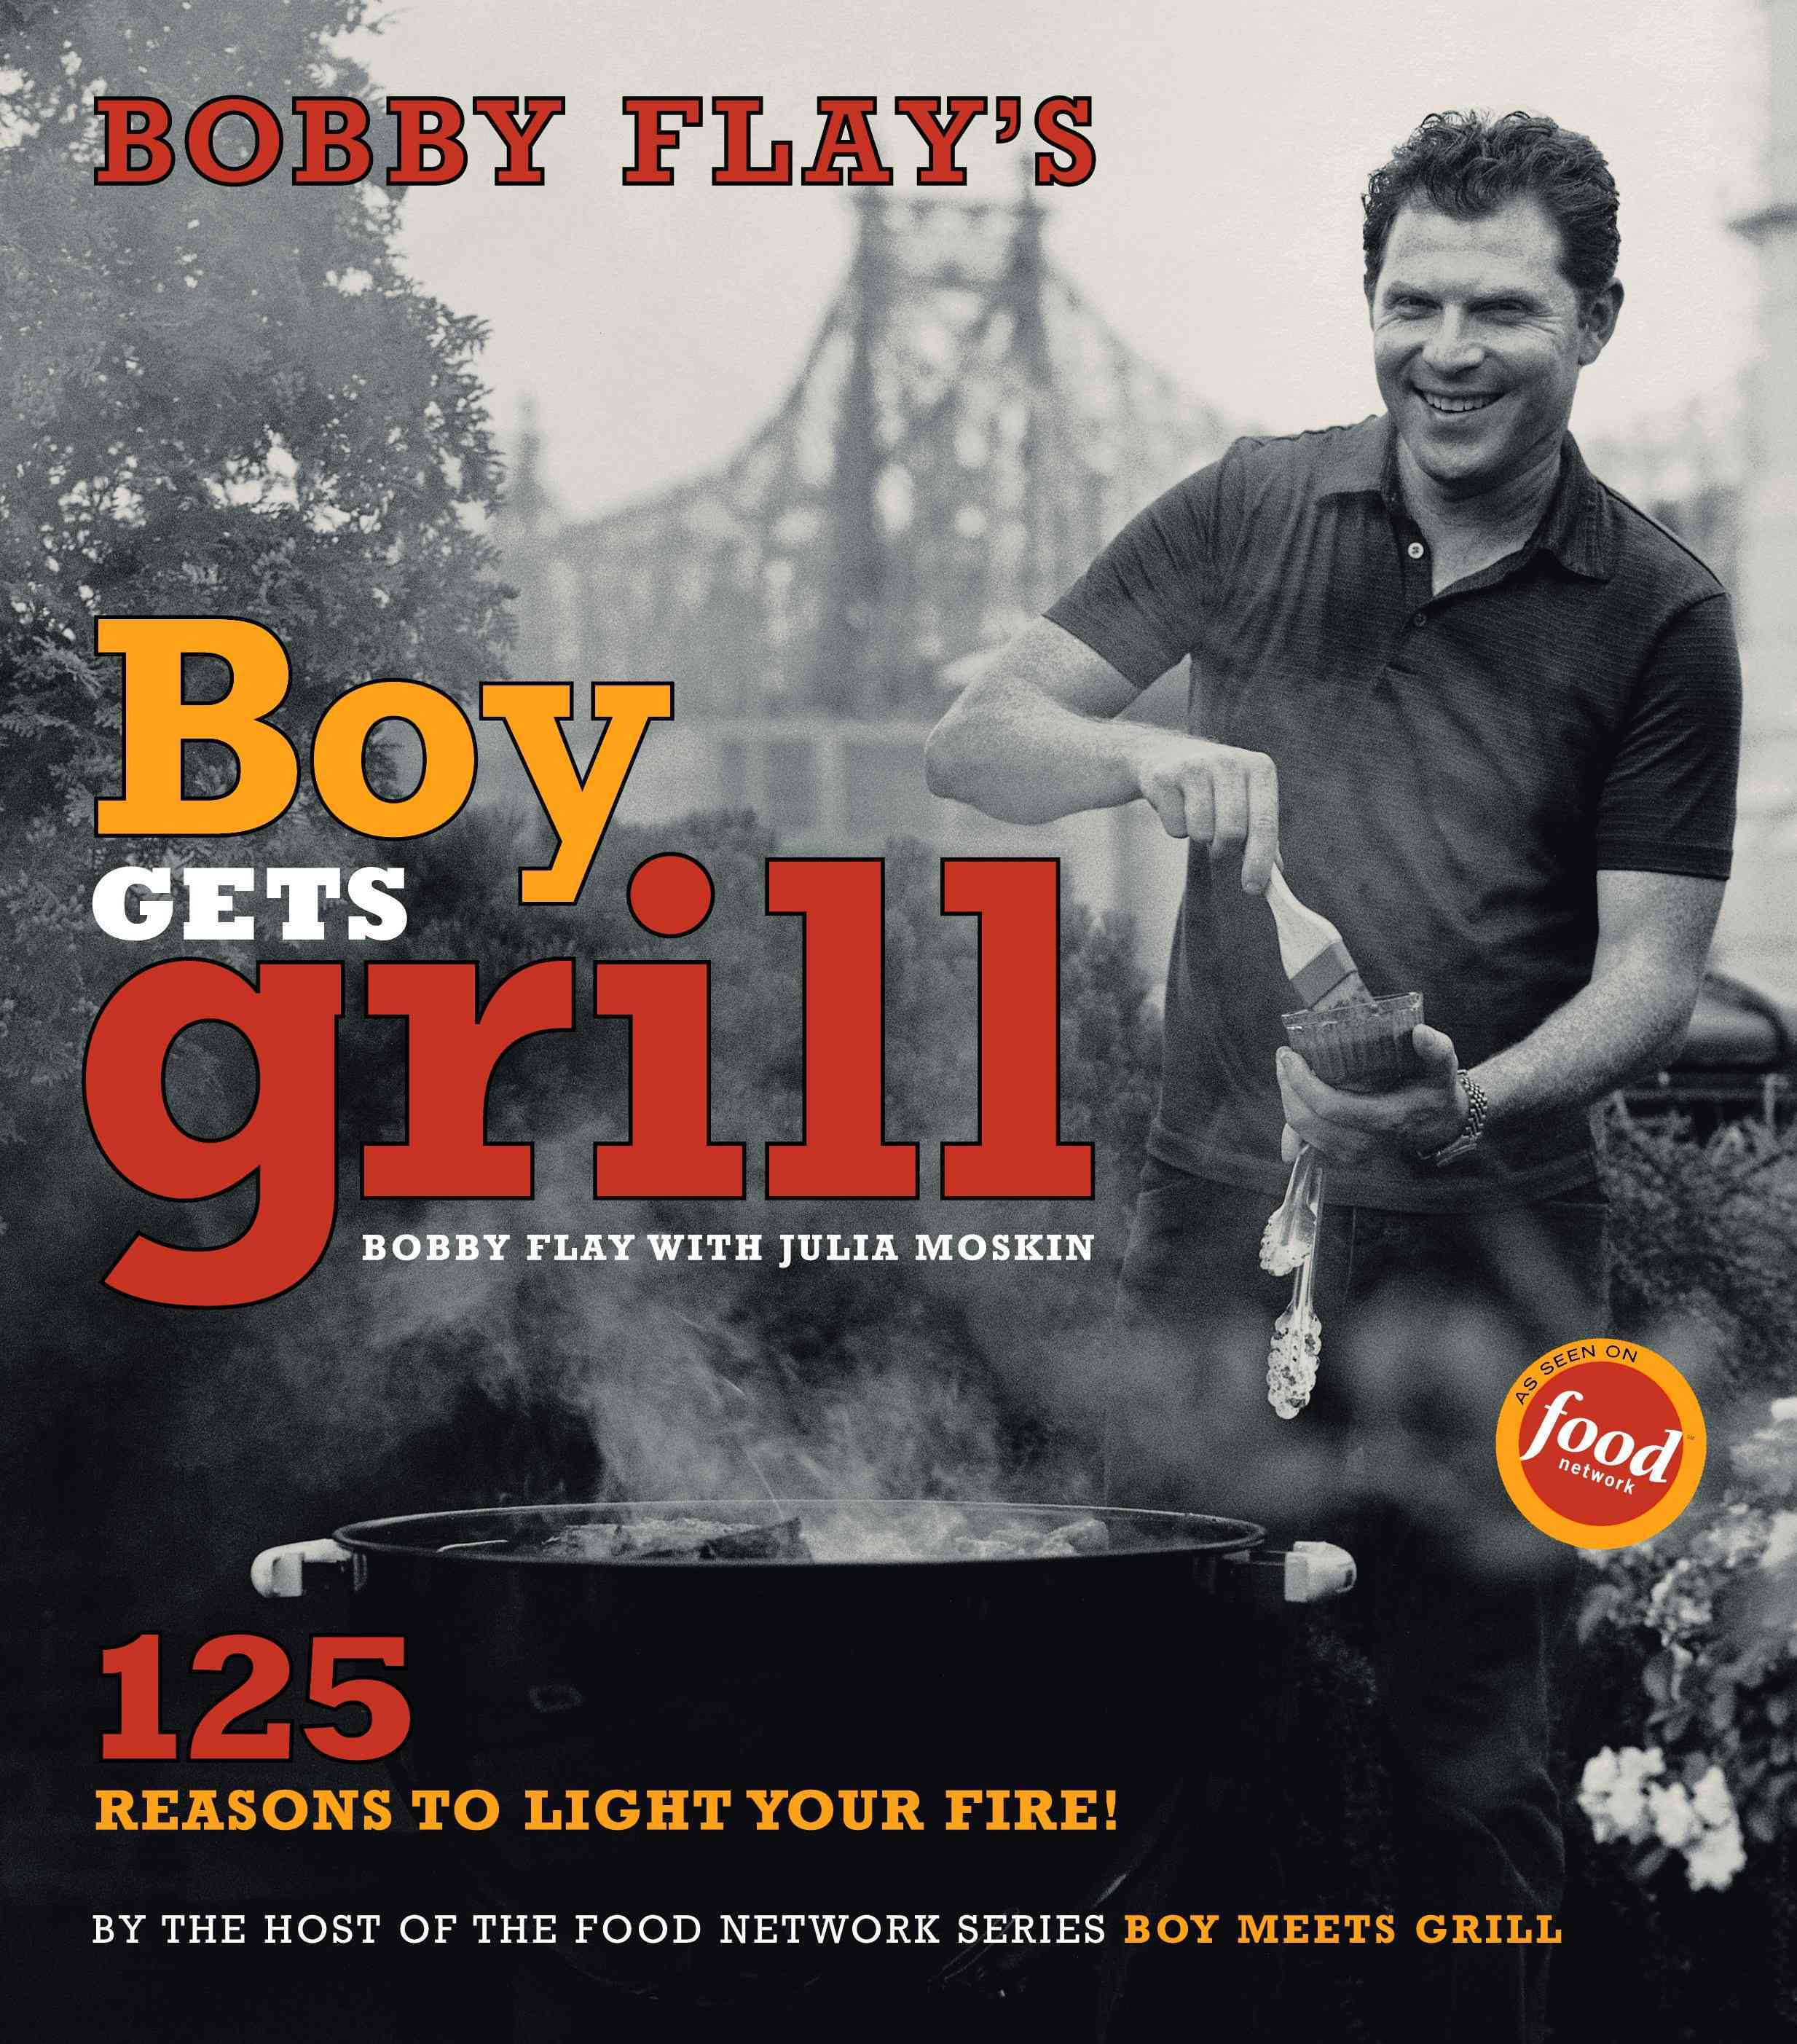 Bobby Flay's Boy Gets Grill By Flay, Bobby/ Moskin, Julia/ Gentl & Hyers (PHT)/ Dolan, John (PHT)